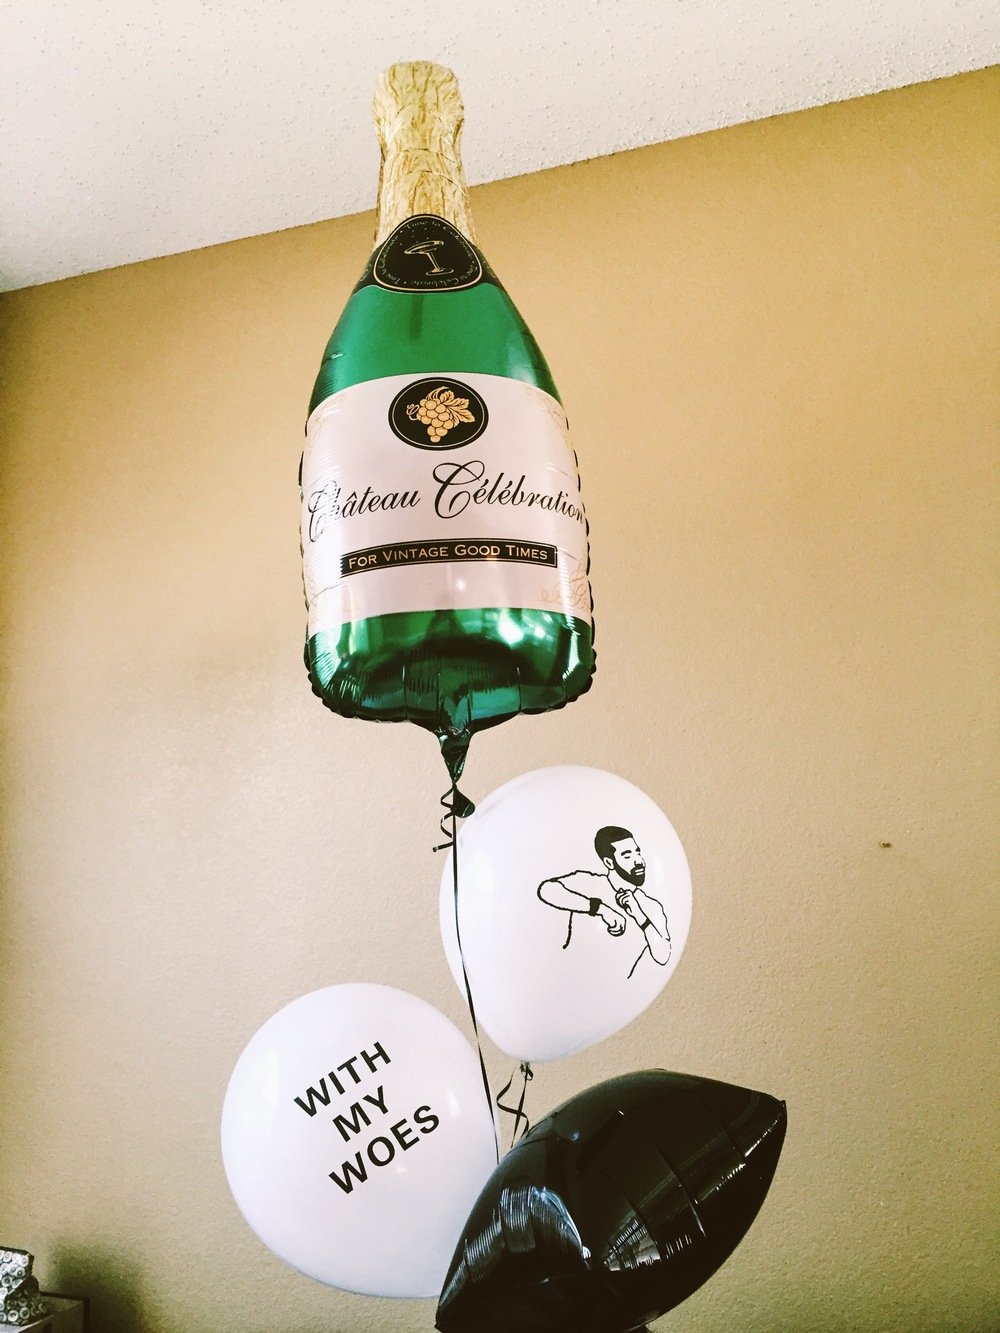 Check out the dope Bday balloons my bestie, Lozie, got me! We are major Drake lovers (if ya hadn't already guessed that).